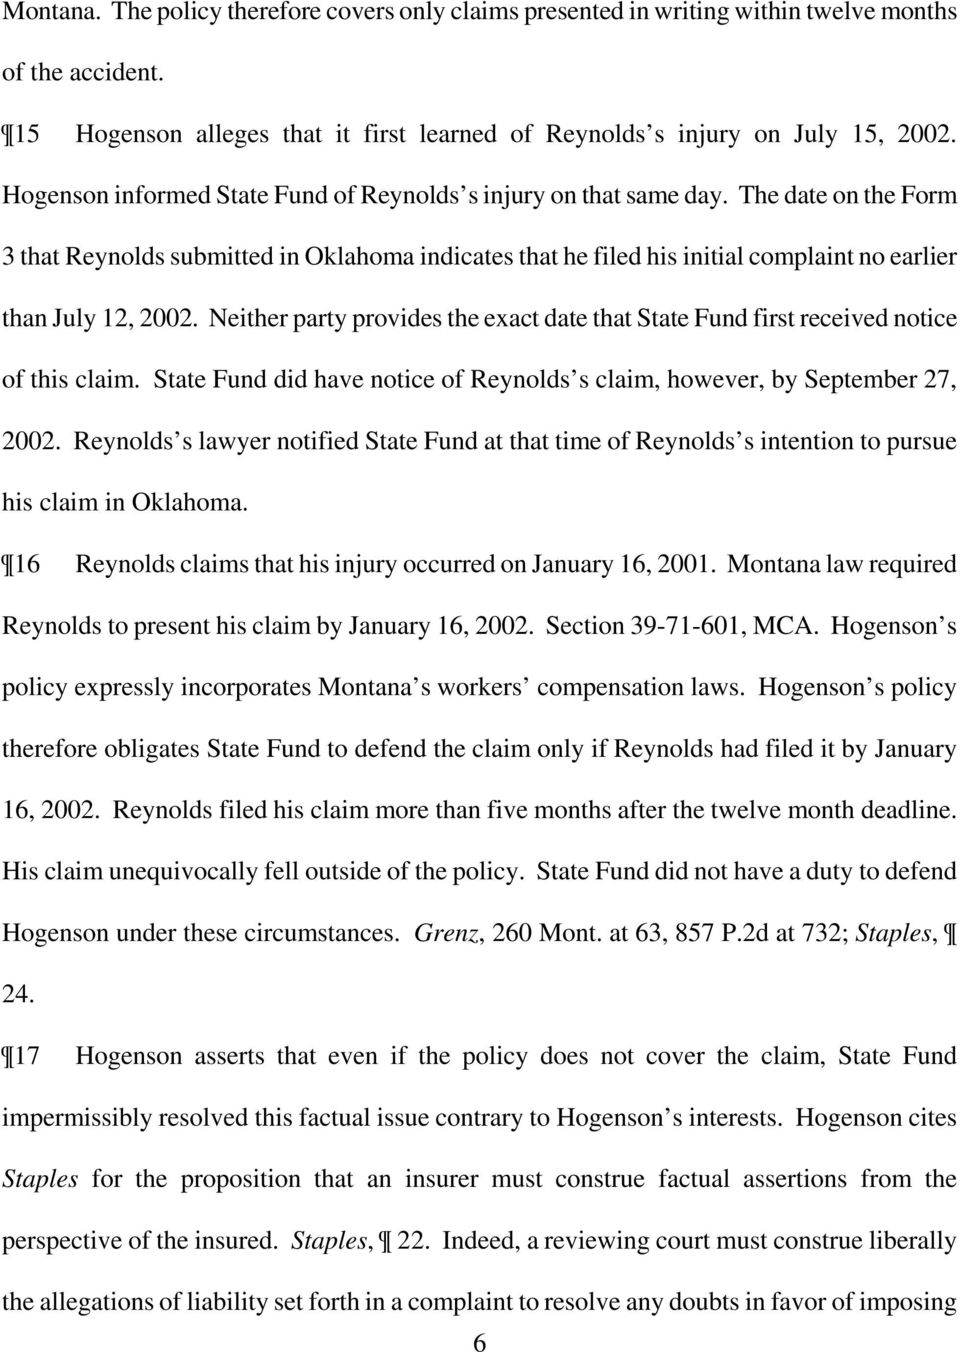 The date on the Form 3 that Reynolds submitted in Oklahoma indicates that he filed his initial complaint no earlier than July 12, 2002.